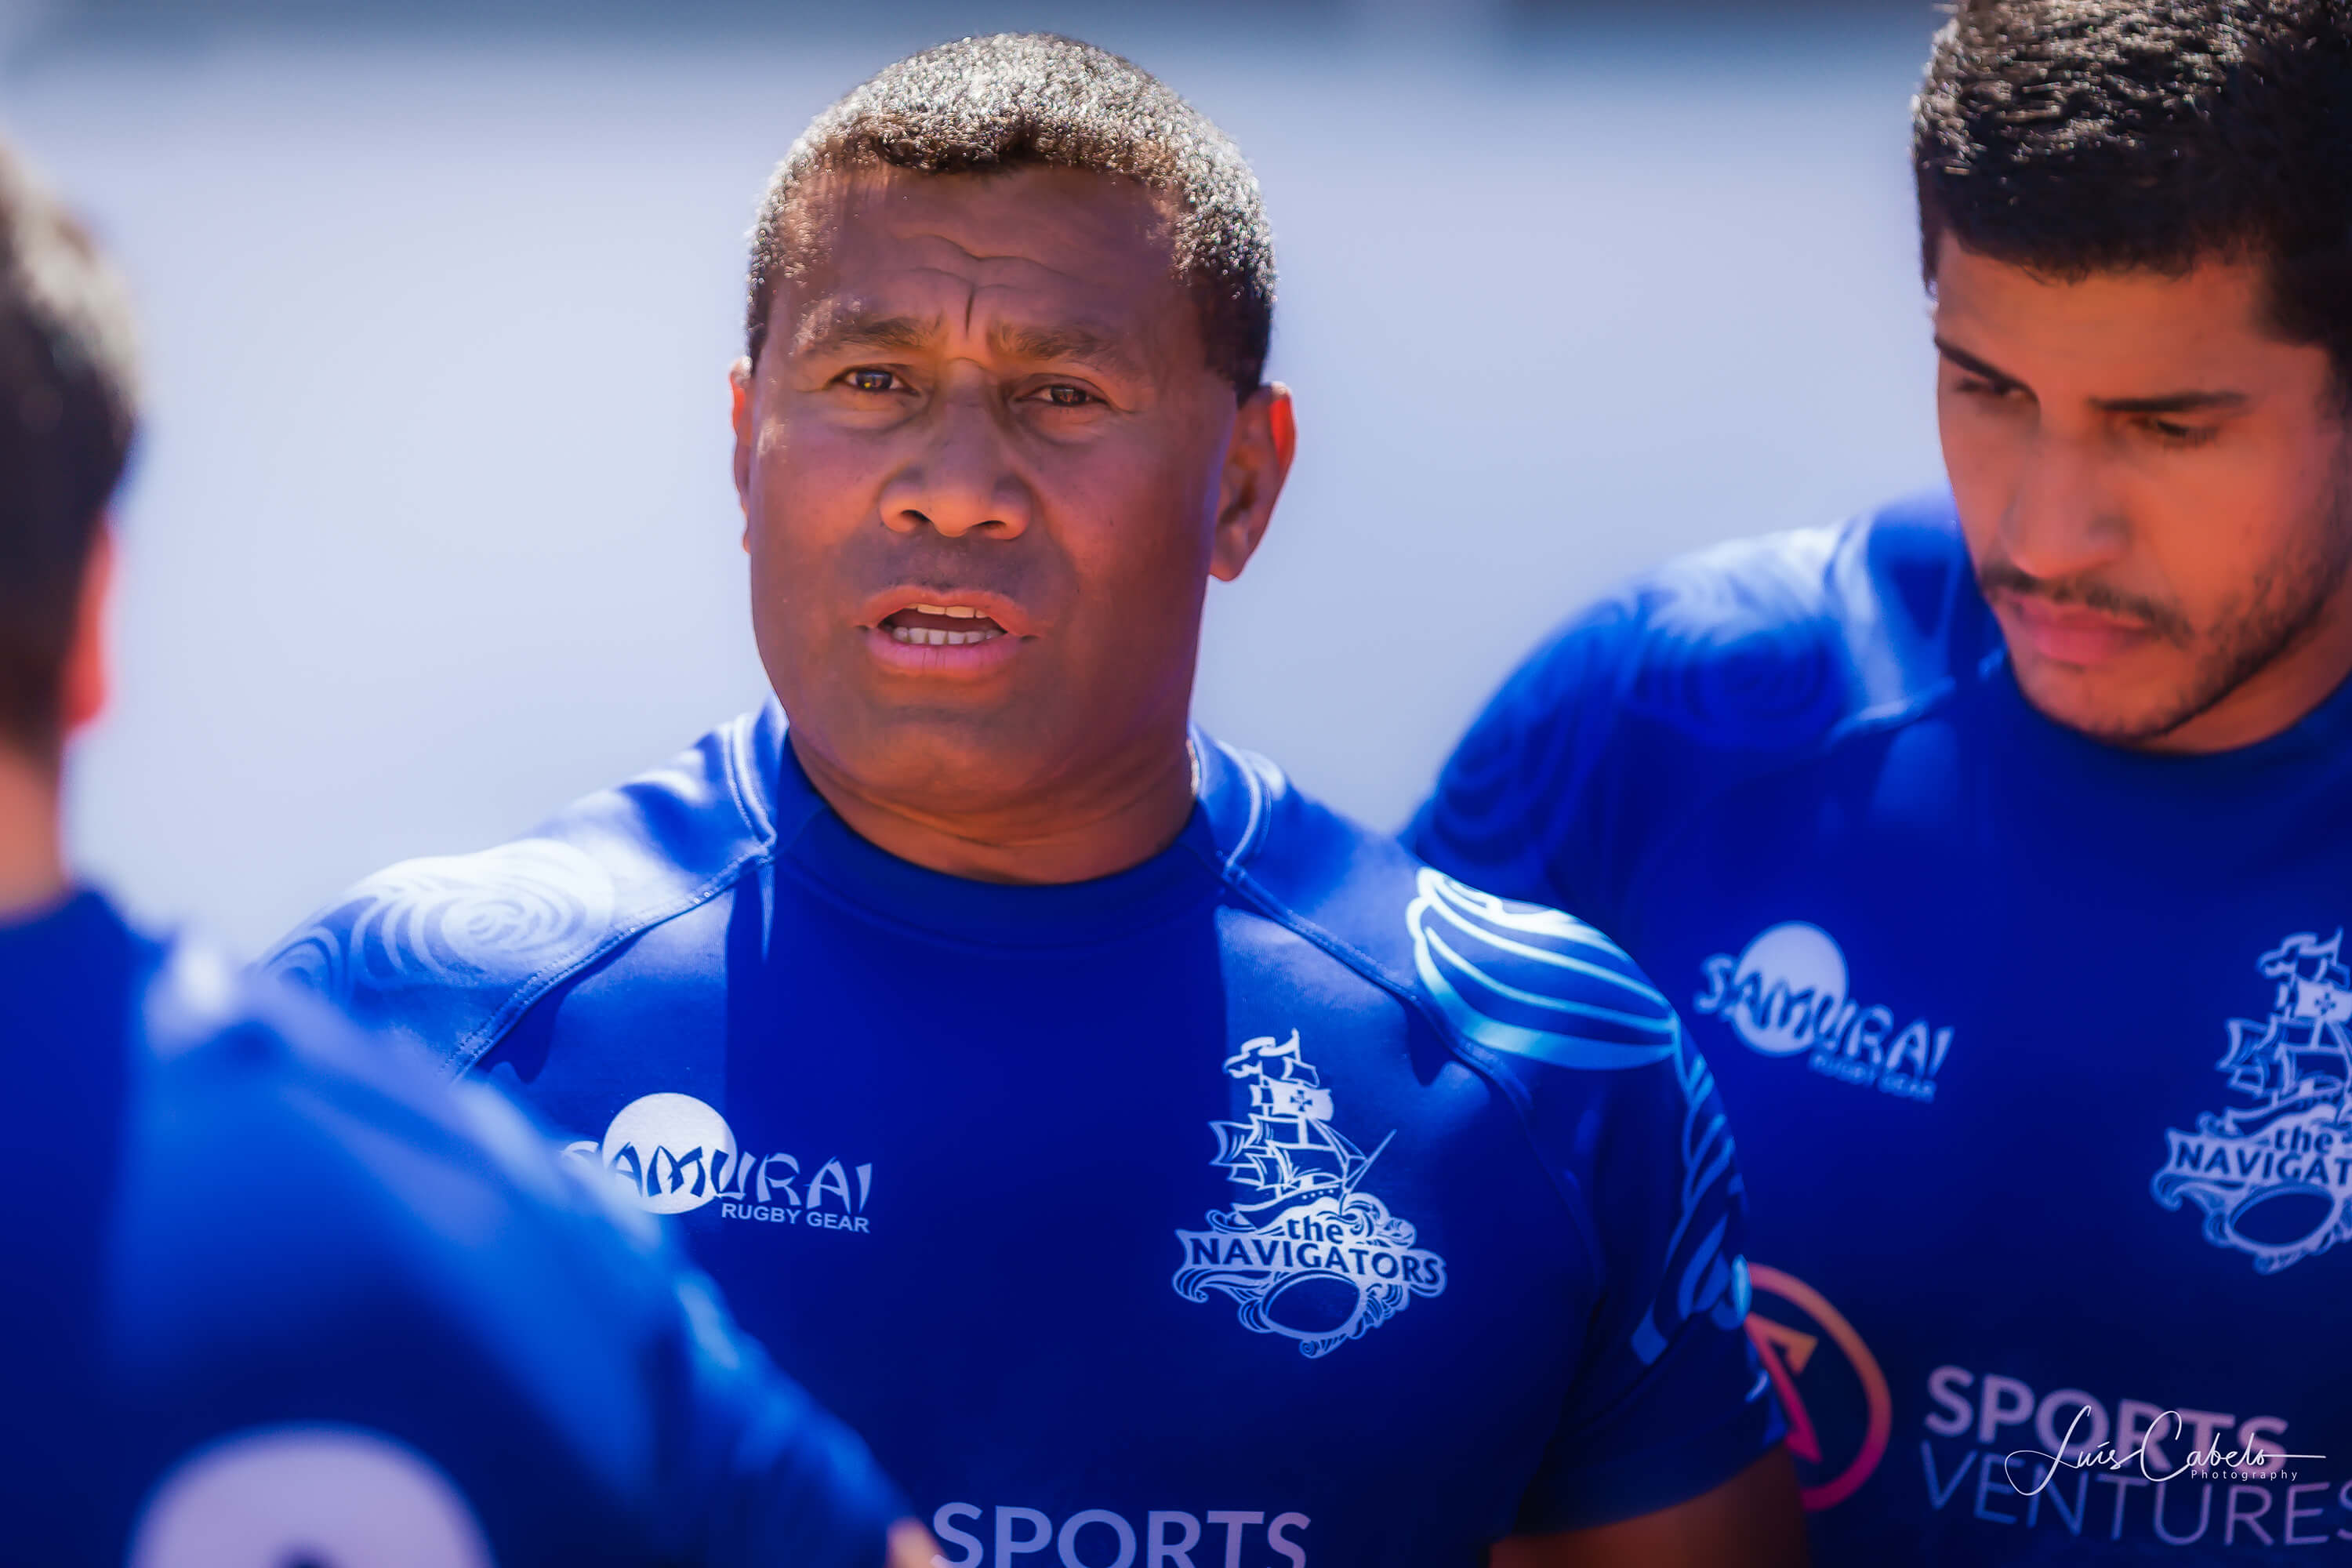 Algarve-7s-rugby-sevens-tournament-portugal-waisale-serevi